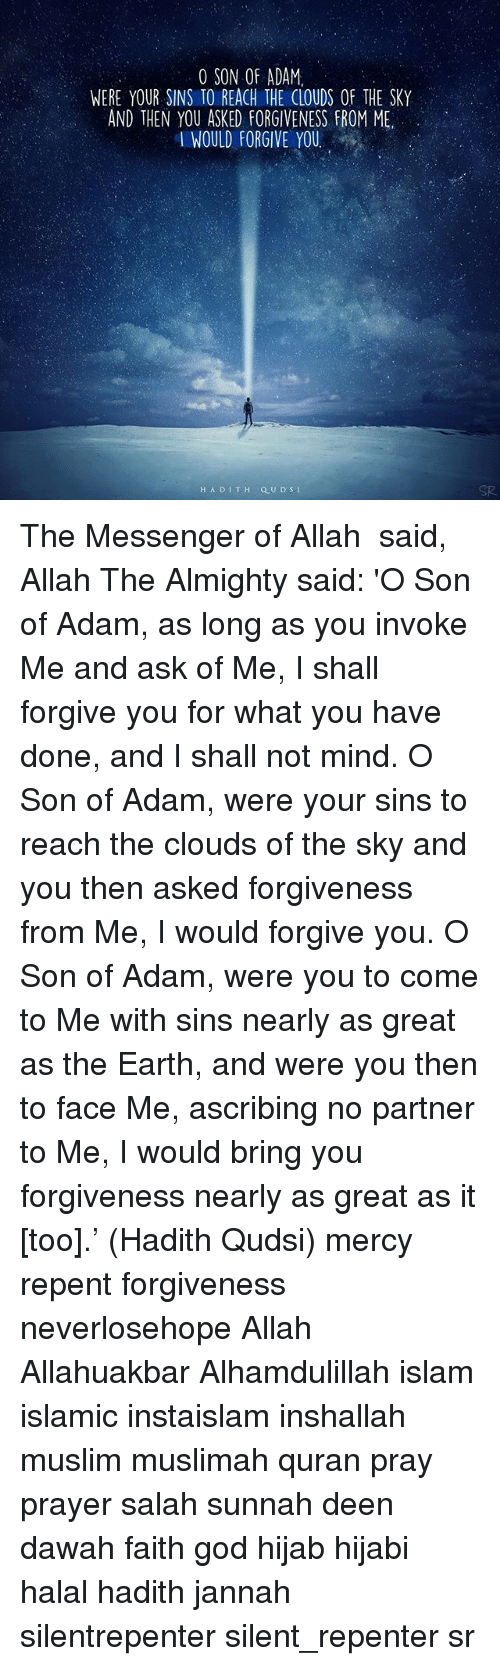 invoke: O SON OF ADAM.  WERE YOUR SINS TOREACH THE CLOUDS OF THE SKY  AND THEN YOU ASKED FORGIVENESS FROM ME  I WOULD FORGIVE YOU.  H A D I T H Q U D S-1 The Messenger of Allah ‎ﷺ said, Allah The Almighty said: 'O Son of Adam, as long as you invoke Me and ask of Me, I shall forgive you for what you have done, and I shall not mind. O Son of Adam, were your sins to reach the clouds of the sky and you then asked forgiveness from Me, I would forgive you. O Son of Adam, were you to come to Me with sins nearly as great as the Earth, and were you then to face Me, ascribing no partner to Me, I would bring you forgiveness nearly as great as it [too].' (Hadith Qudsi) mercy repent forgiveness neverlosehope Allah Allahuakbar Alhamdulillah islam islamic instaislam inshallah muslim muslimah quran pray prayer salah sunnah deen dawah faith god hijab hijabi halal hadith jannah silentrepenter silent_repenter sr